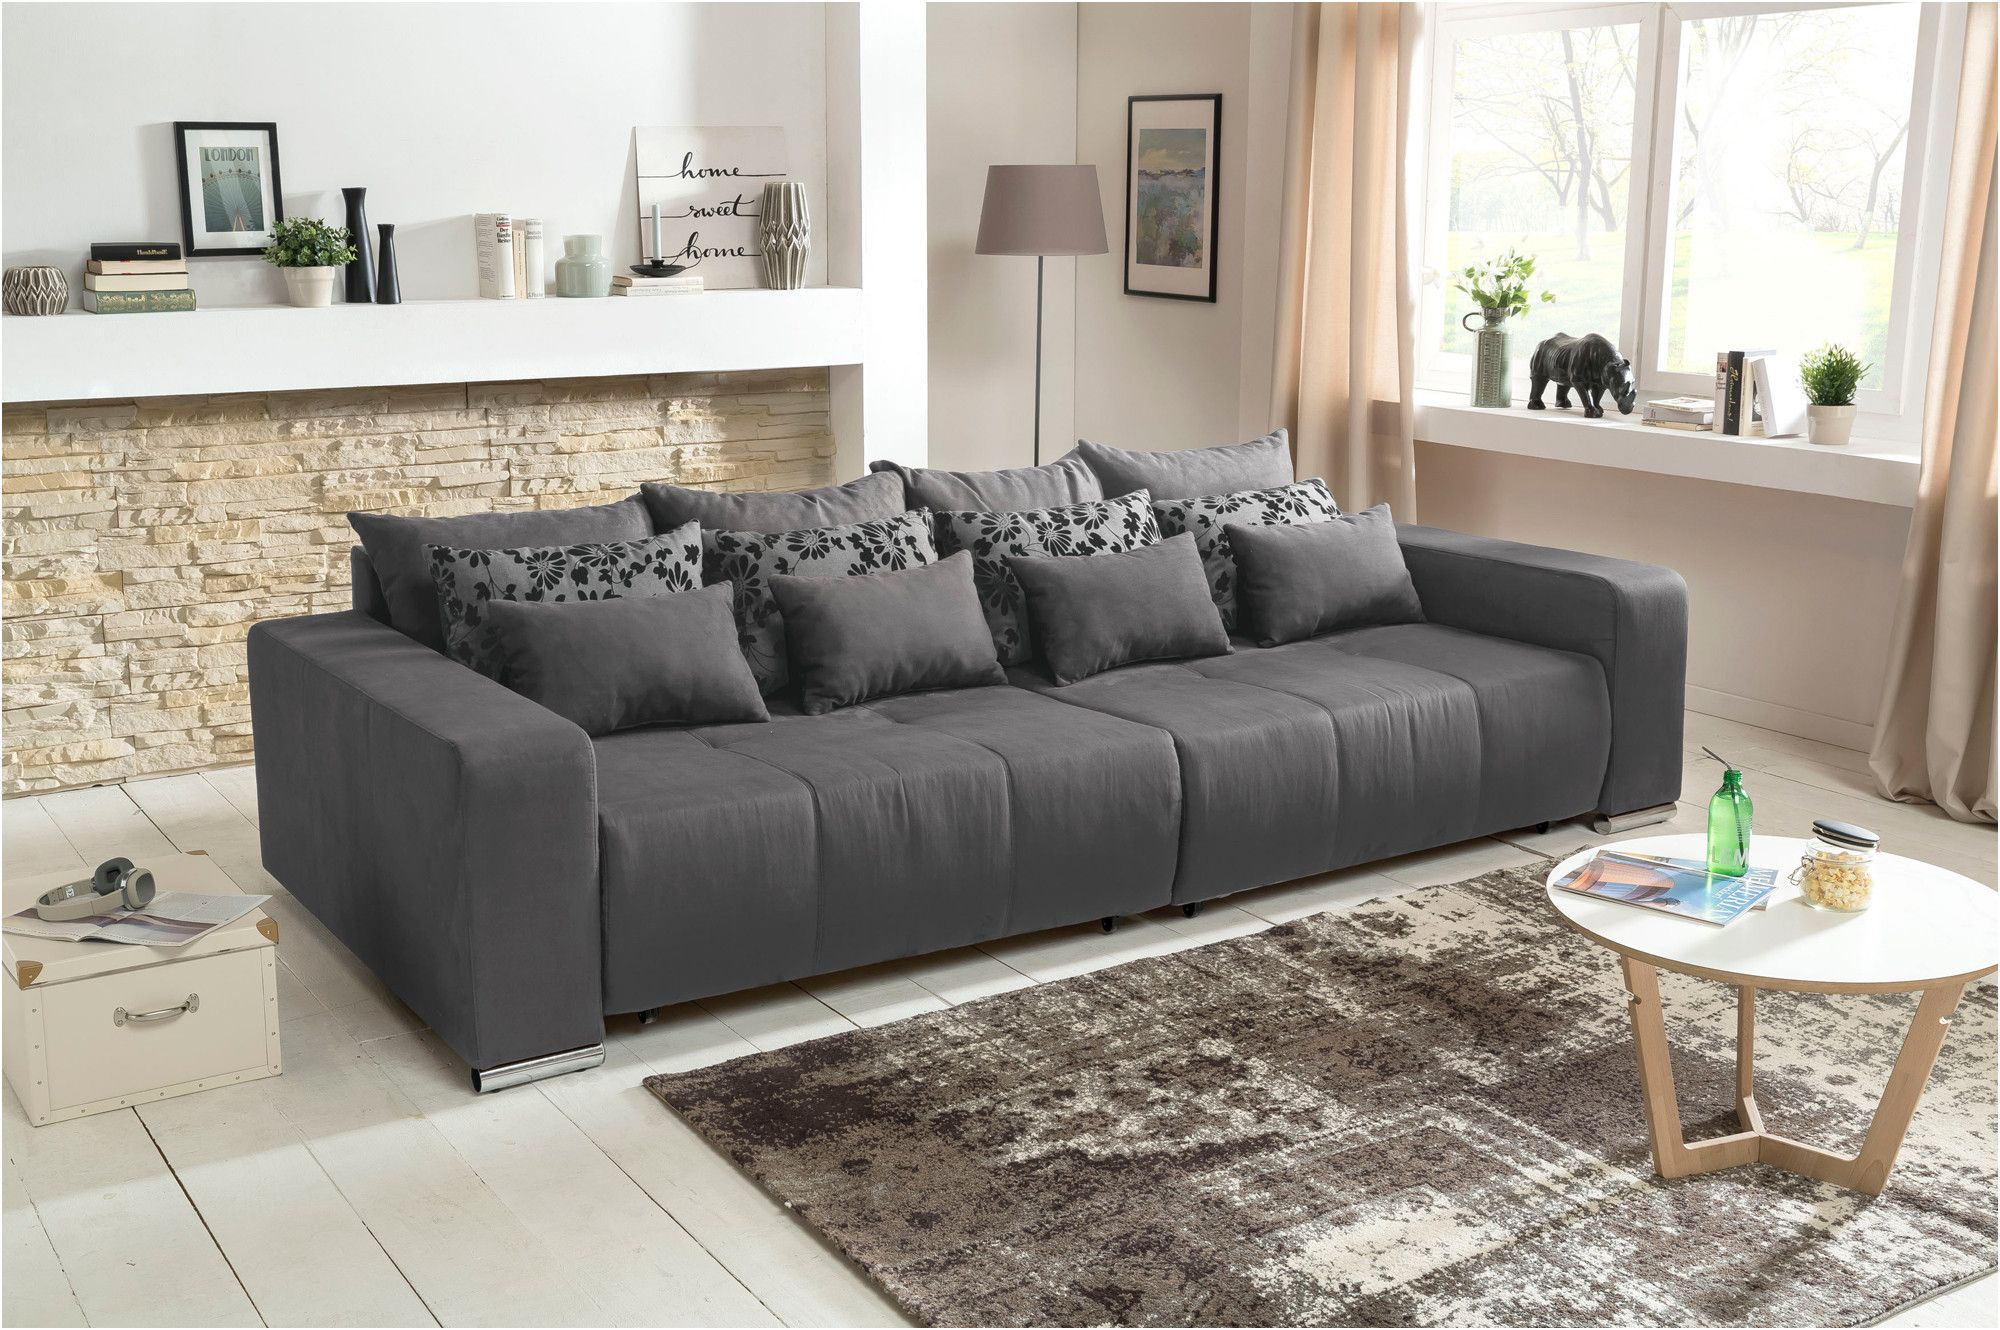 The Big Sofa London Typisch Big Sofa Microfaser Couch Möbel Pinterest Sofa Big